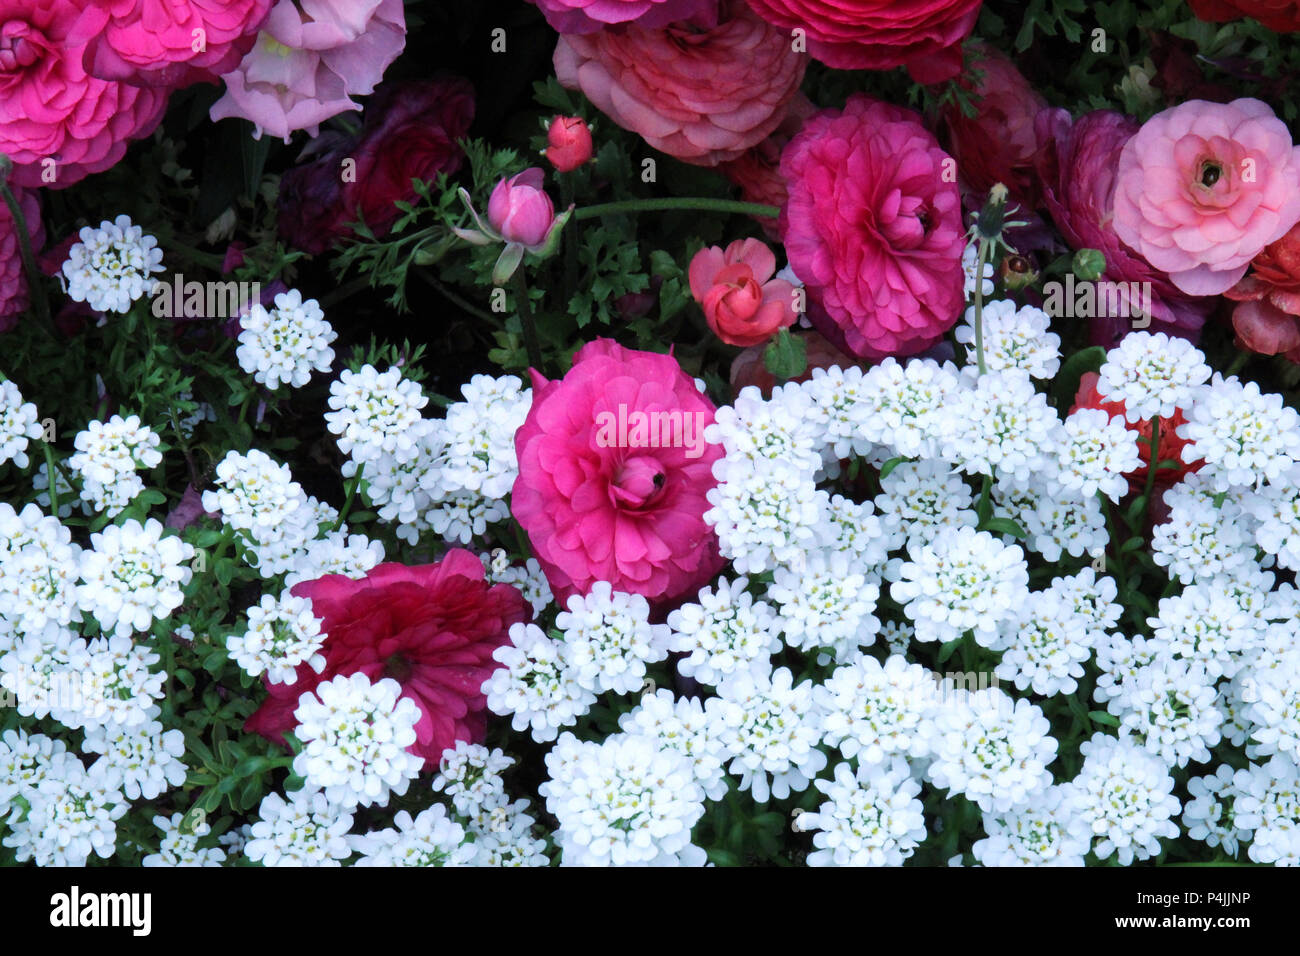 Pink Ranunculus, pink Snapdragon and white Candytuft flowers in a flower bed in spring Stock Photo